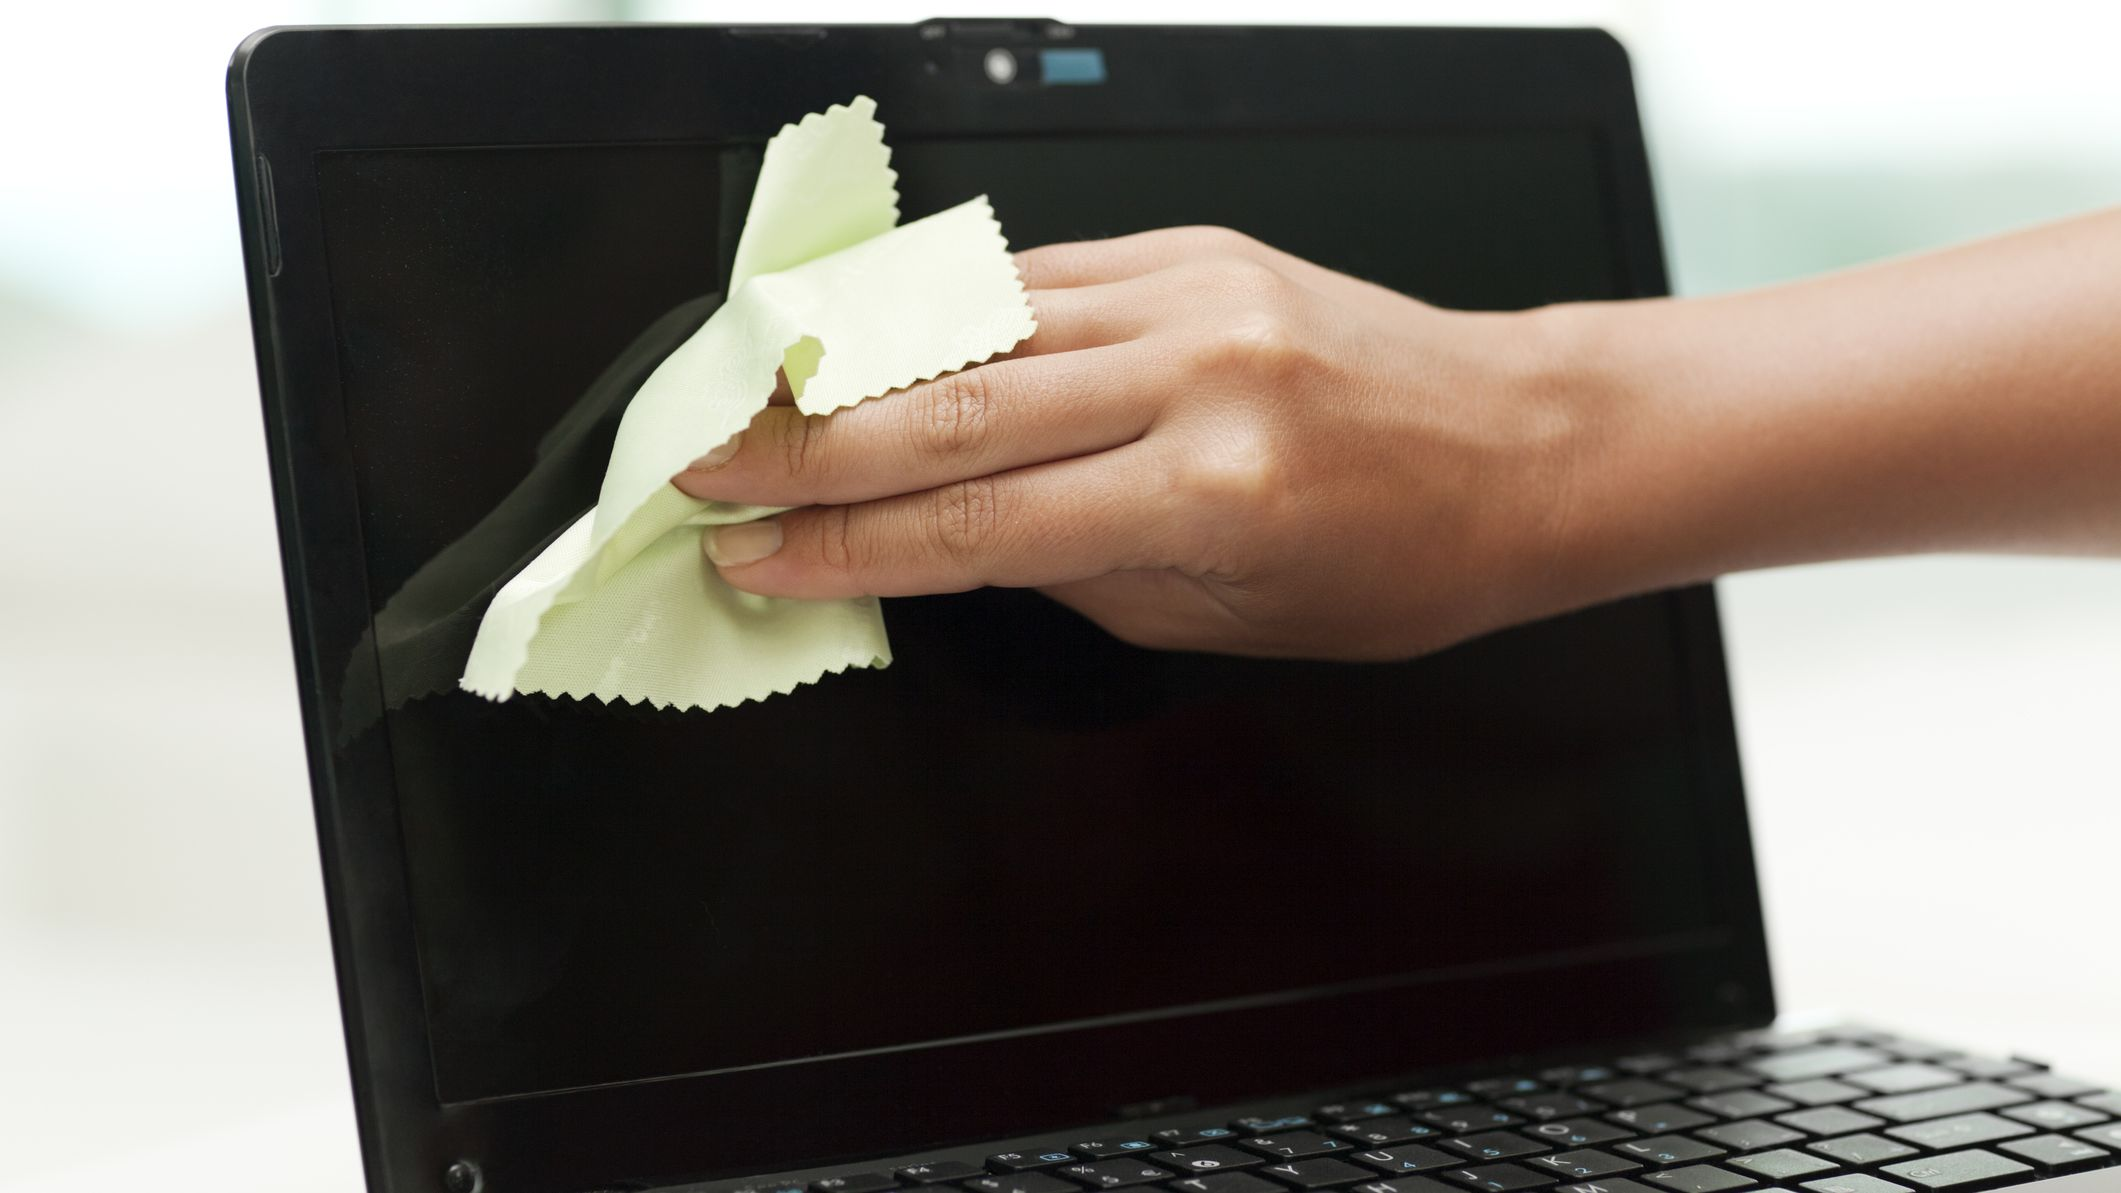 5 Tips for Cleaning Your Laptop, Both Inside and Out